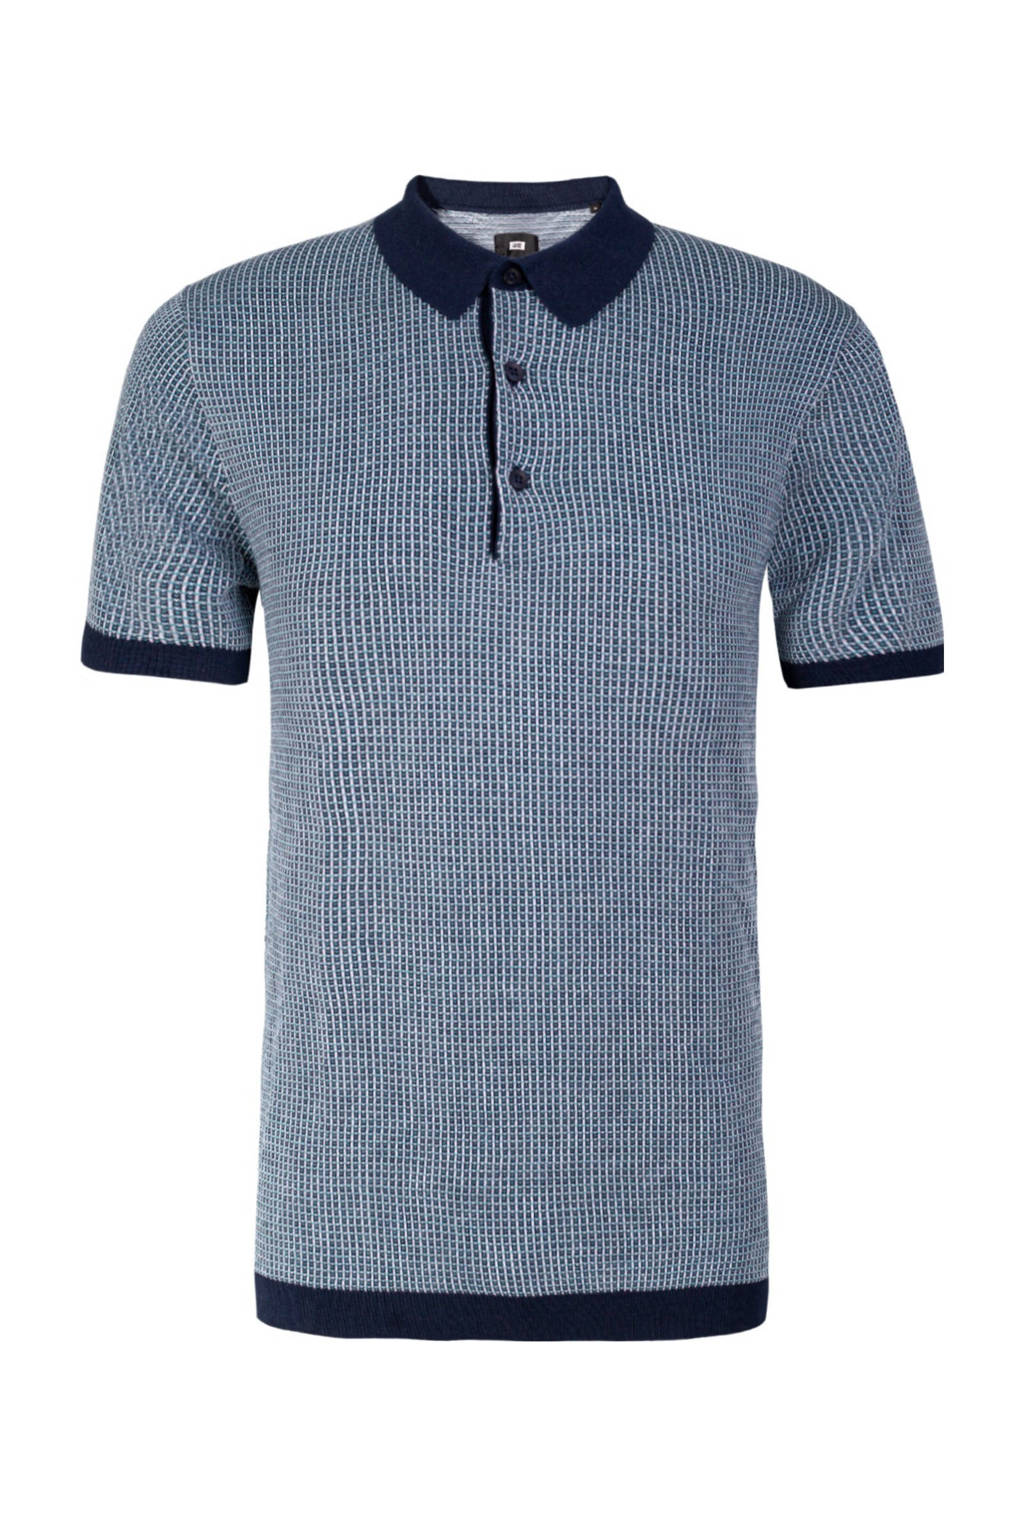 WE Fashion slim fit polo met jacquard en textuur donkerblauw, Donkerblauw